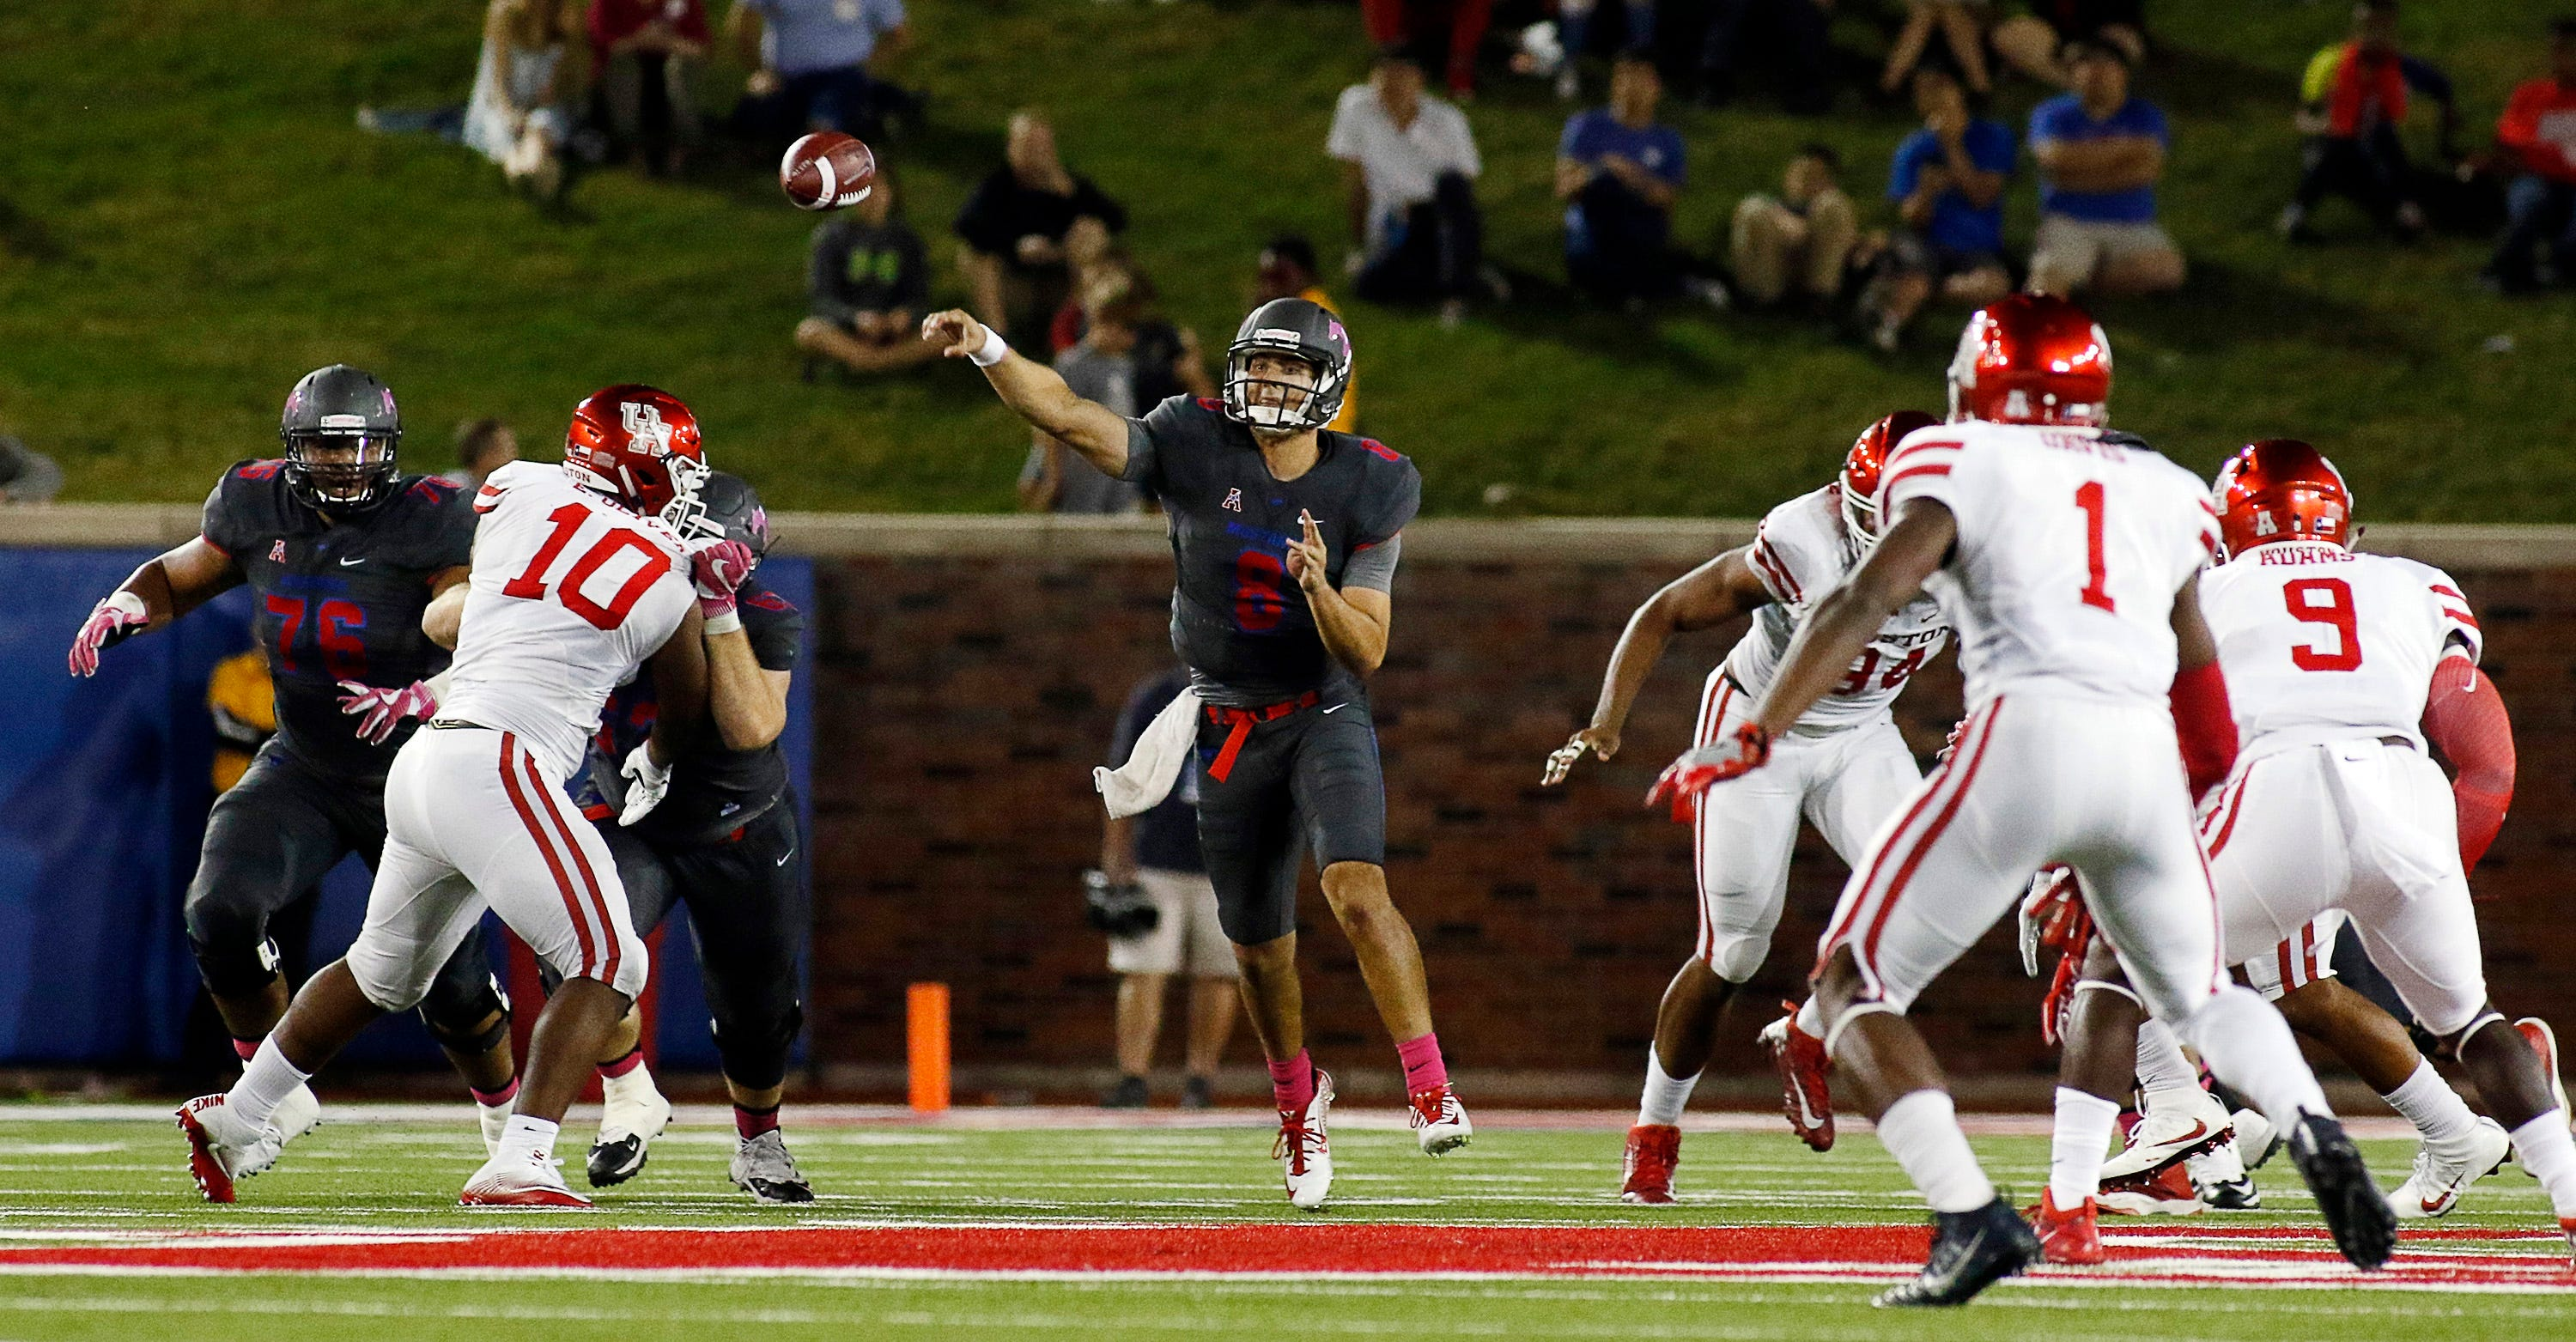 AAC notes: QB battles abound, and optimism at SMU